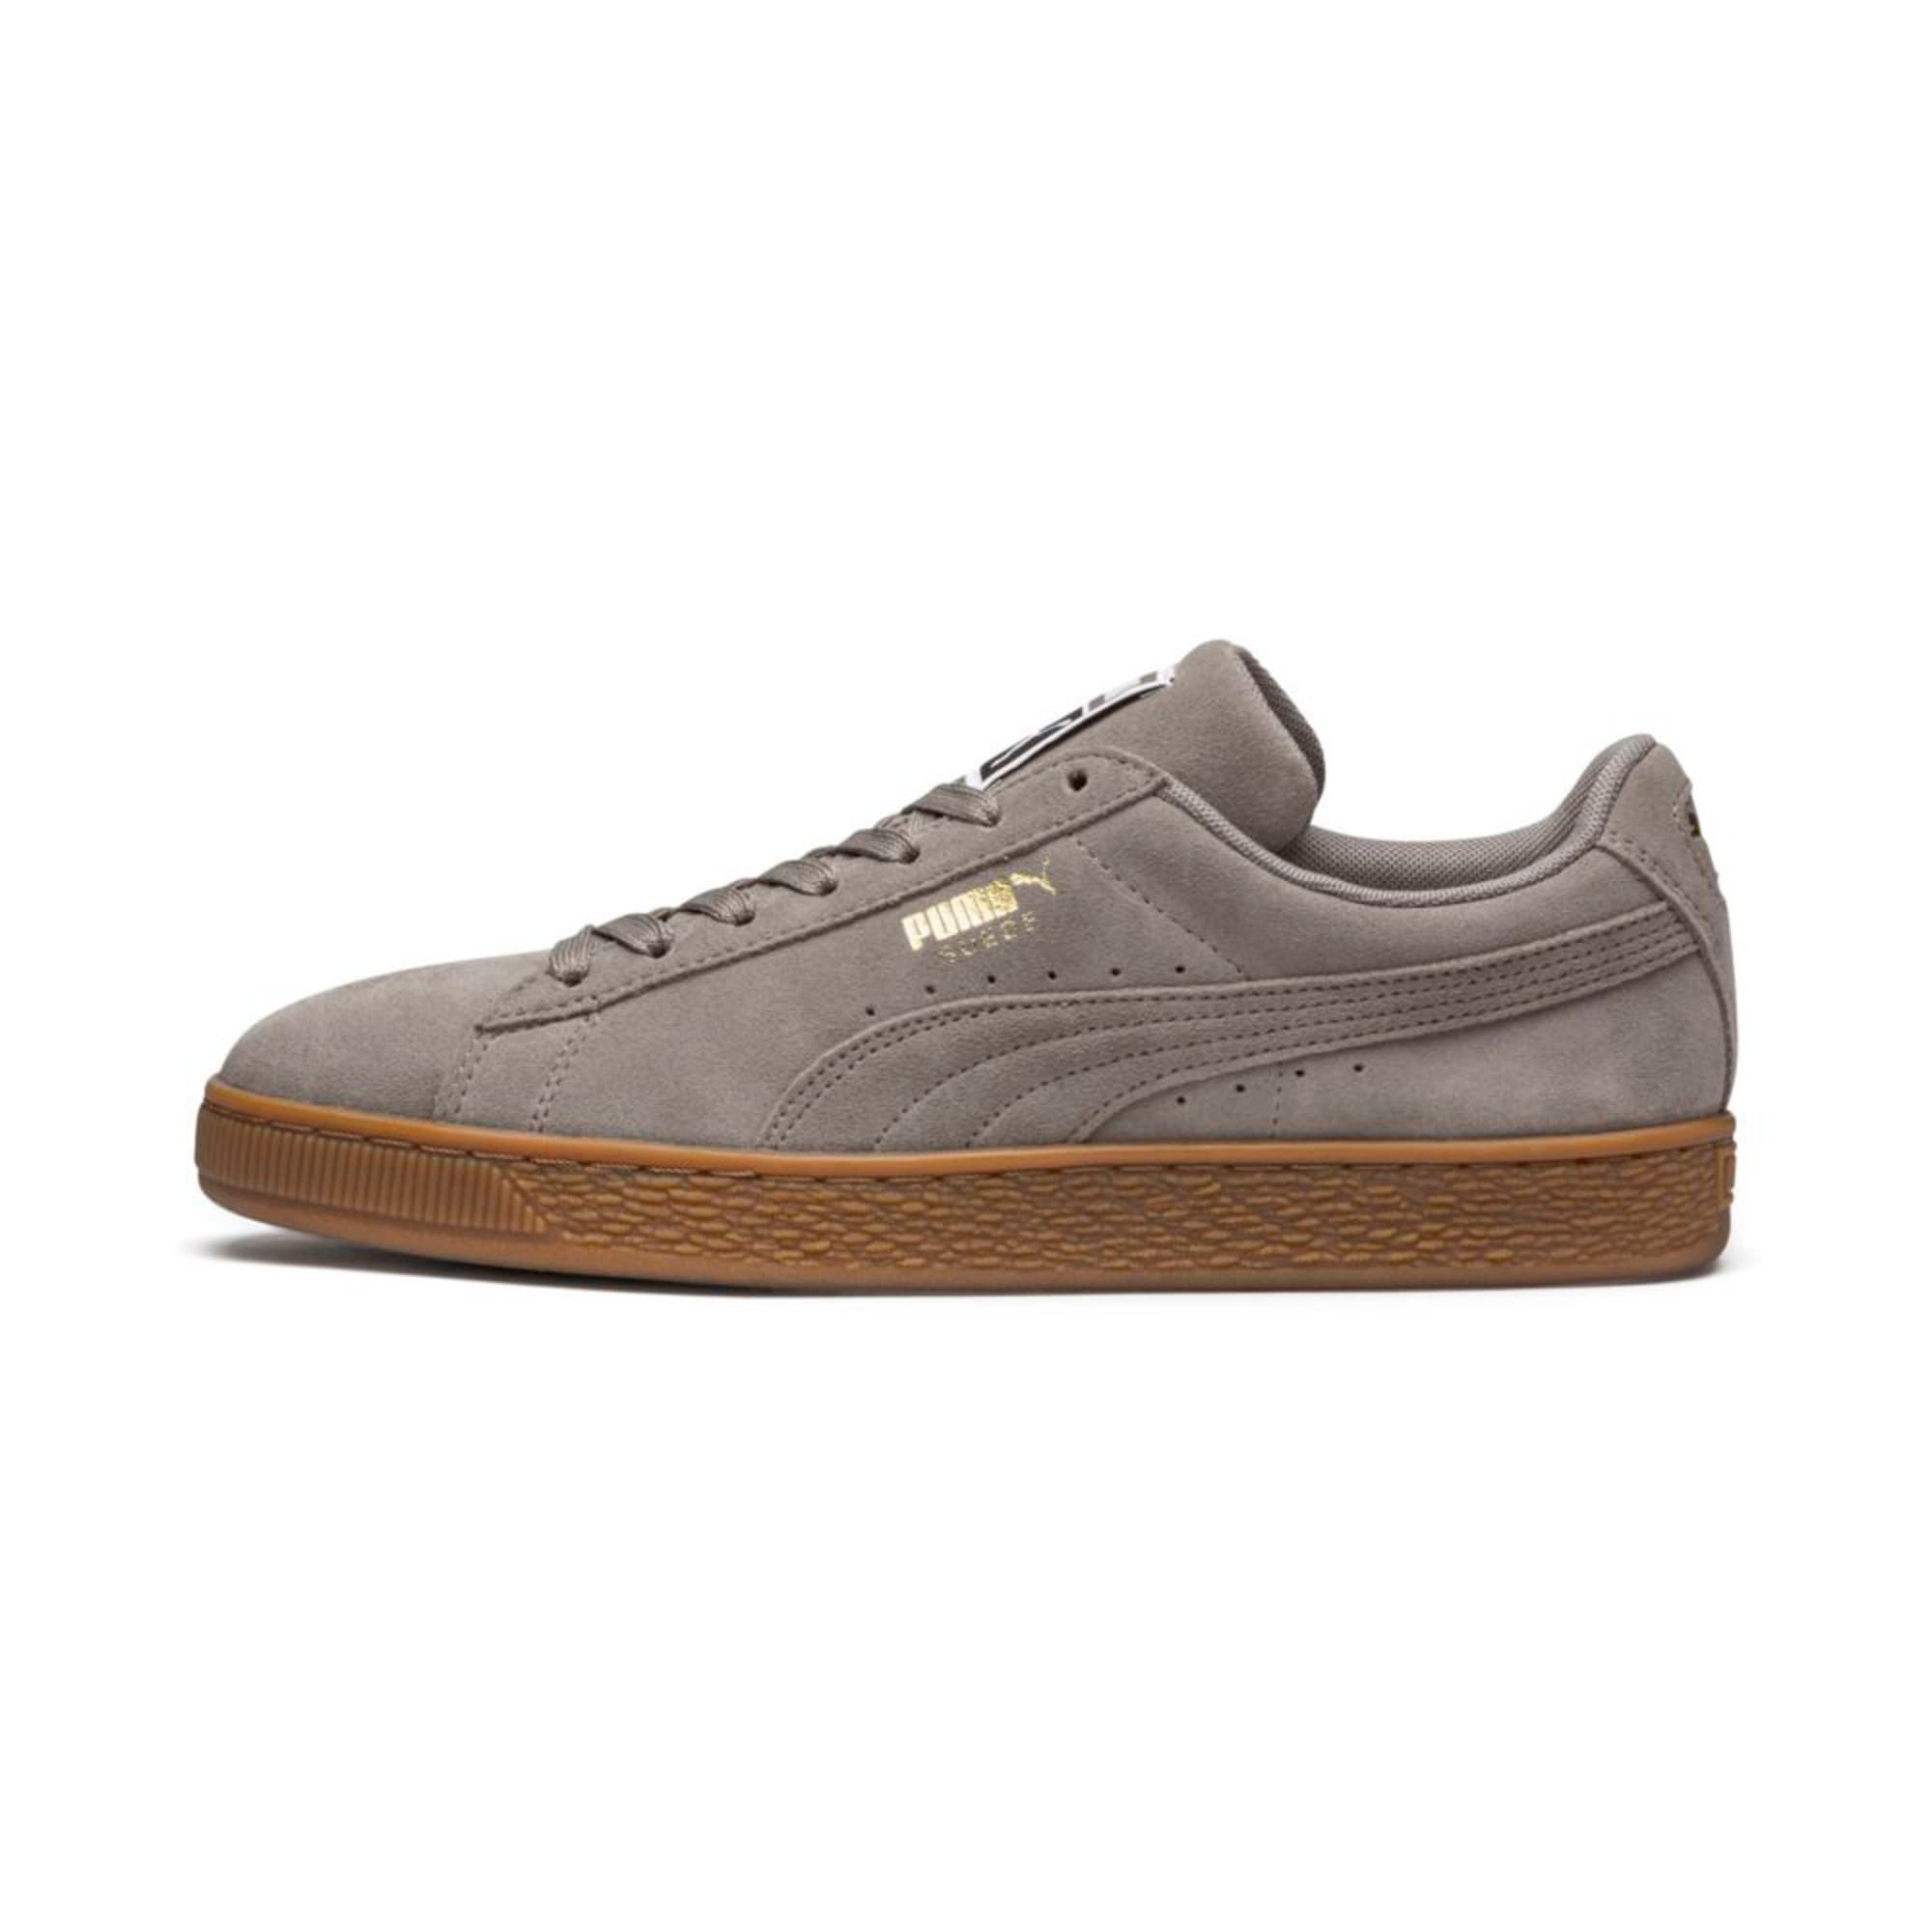 Thumbnail 1 of Suede Classic Trainers, Elephant Skin- Team Gold, medium-IND